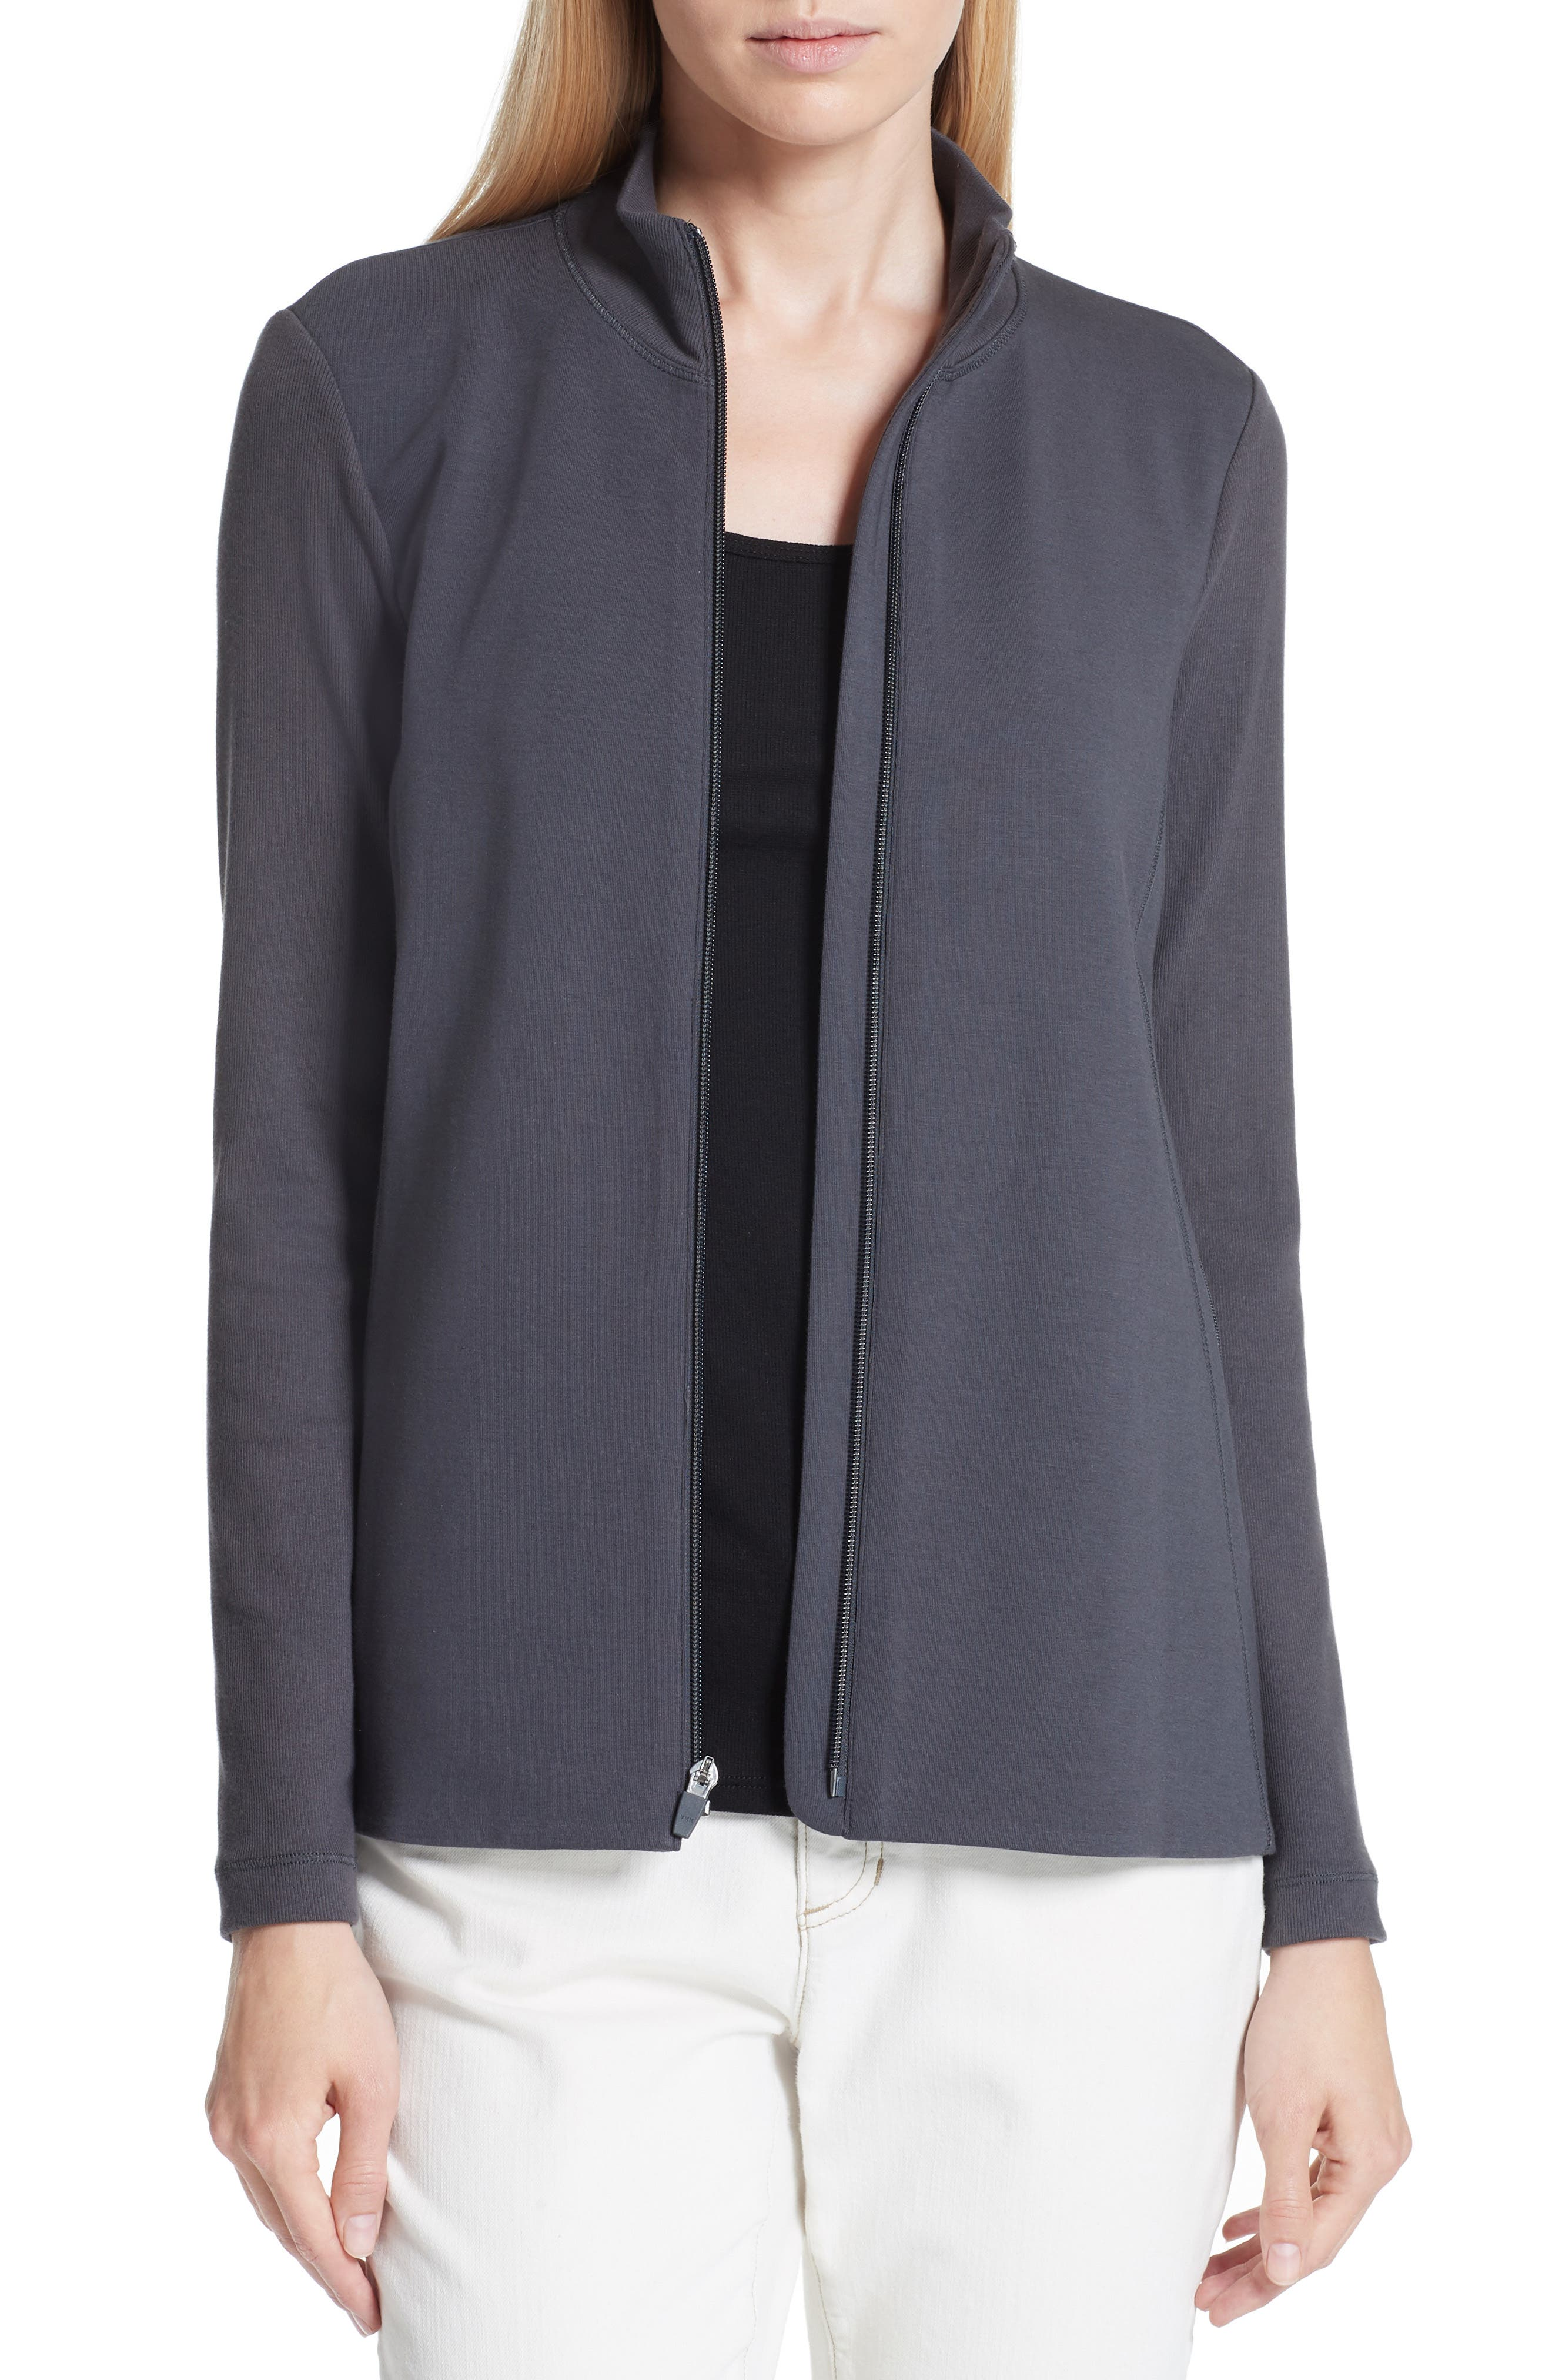 Mixed Organic Cotton Stretch Knit Jacket,                         Main,                         color, Graphite